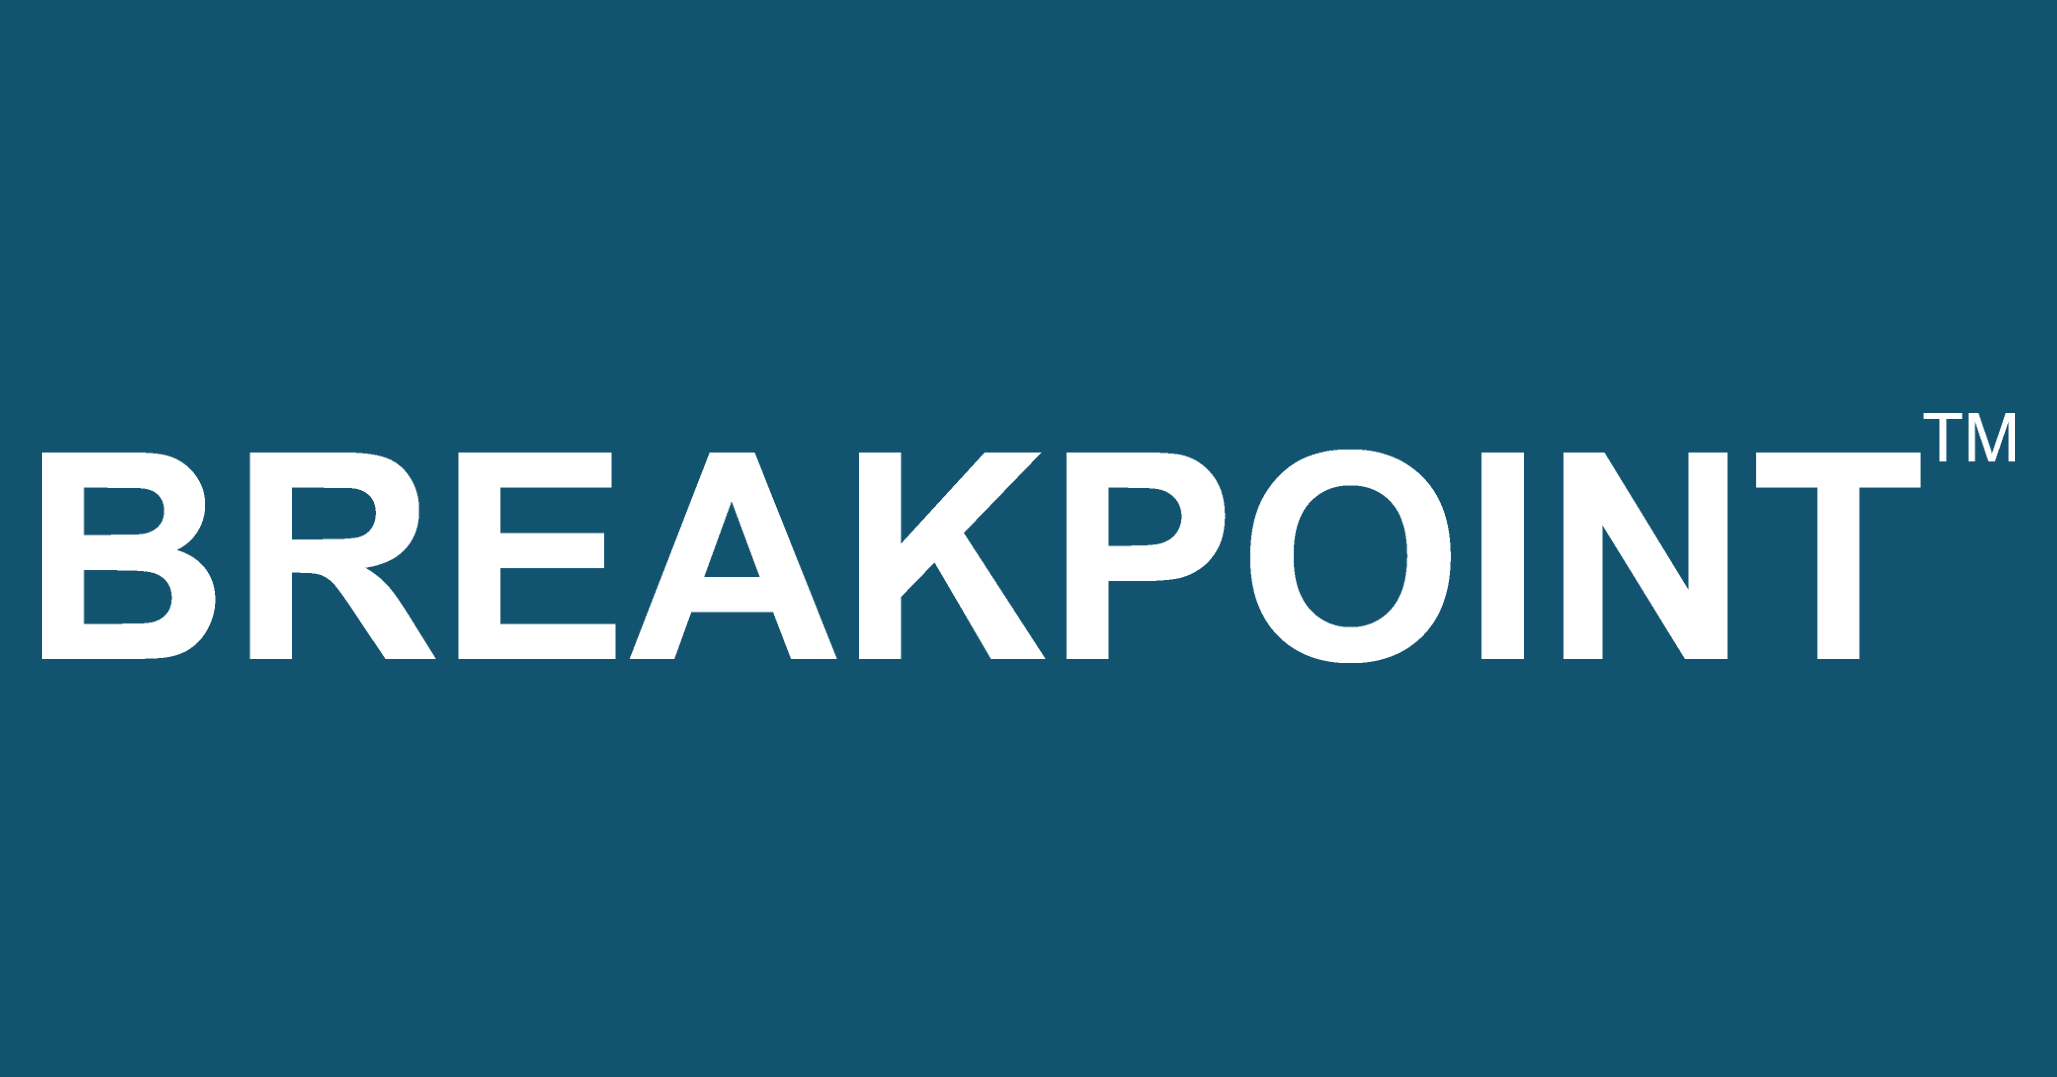 Does your portfolio adapt as fast as market conditions change? - For professional investors who consider correlation and regime changes, Breakpoint™ provides global market alerts and forecasts that help them adjust their strategy through advanced machine learning.Get Daily Breakpoint Alerts